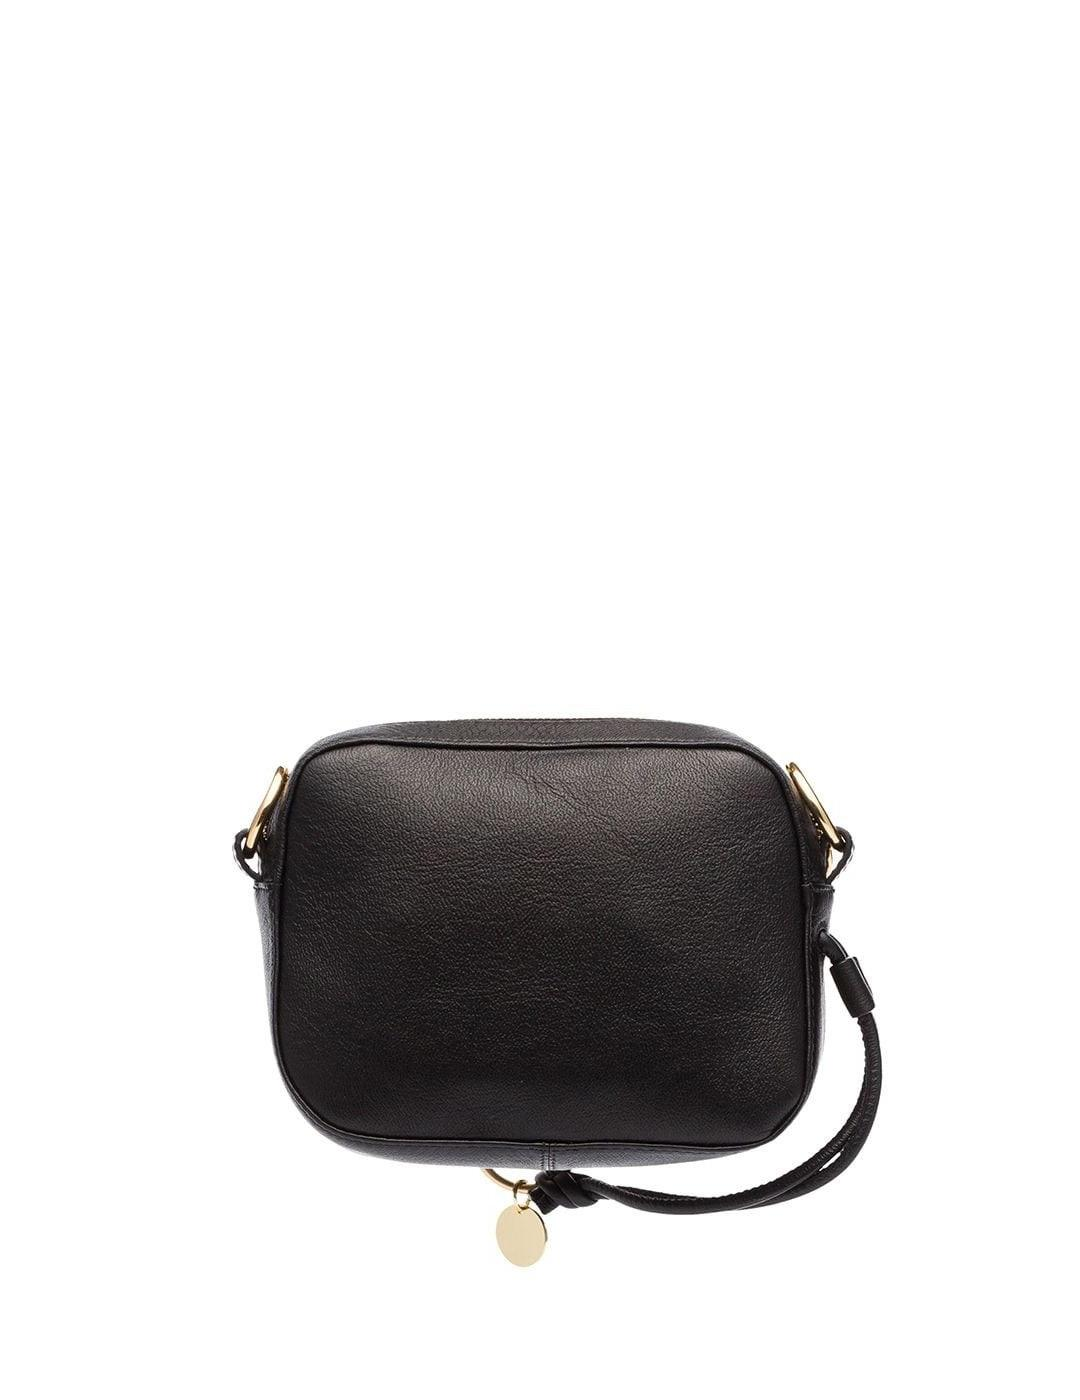 Bolso See by Chloé negro bandolera Shoulder bag